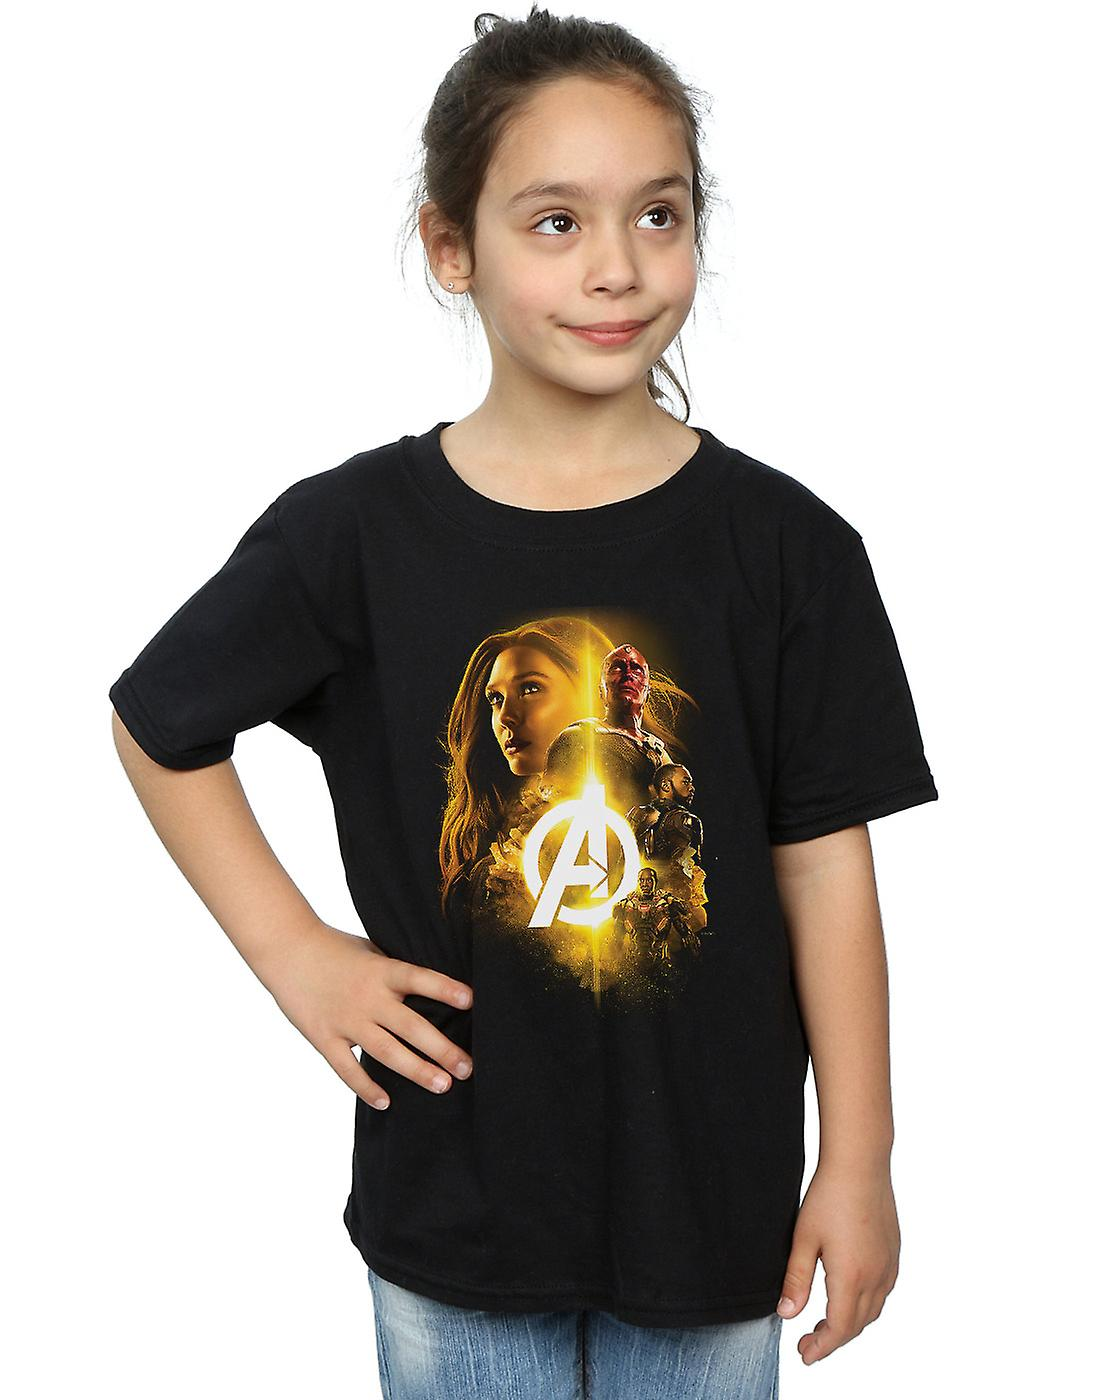 Marvel Girls Avengers Infinity War Vision Witch Team Up T-Shirt